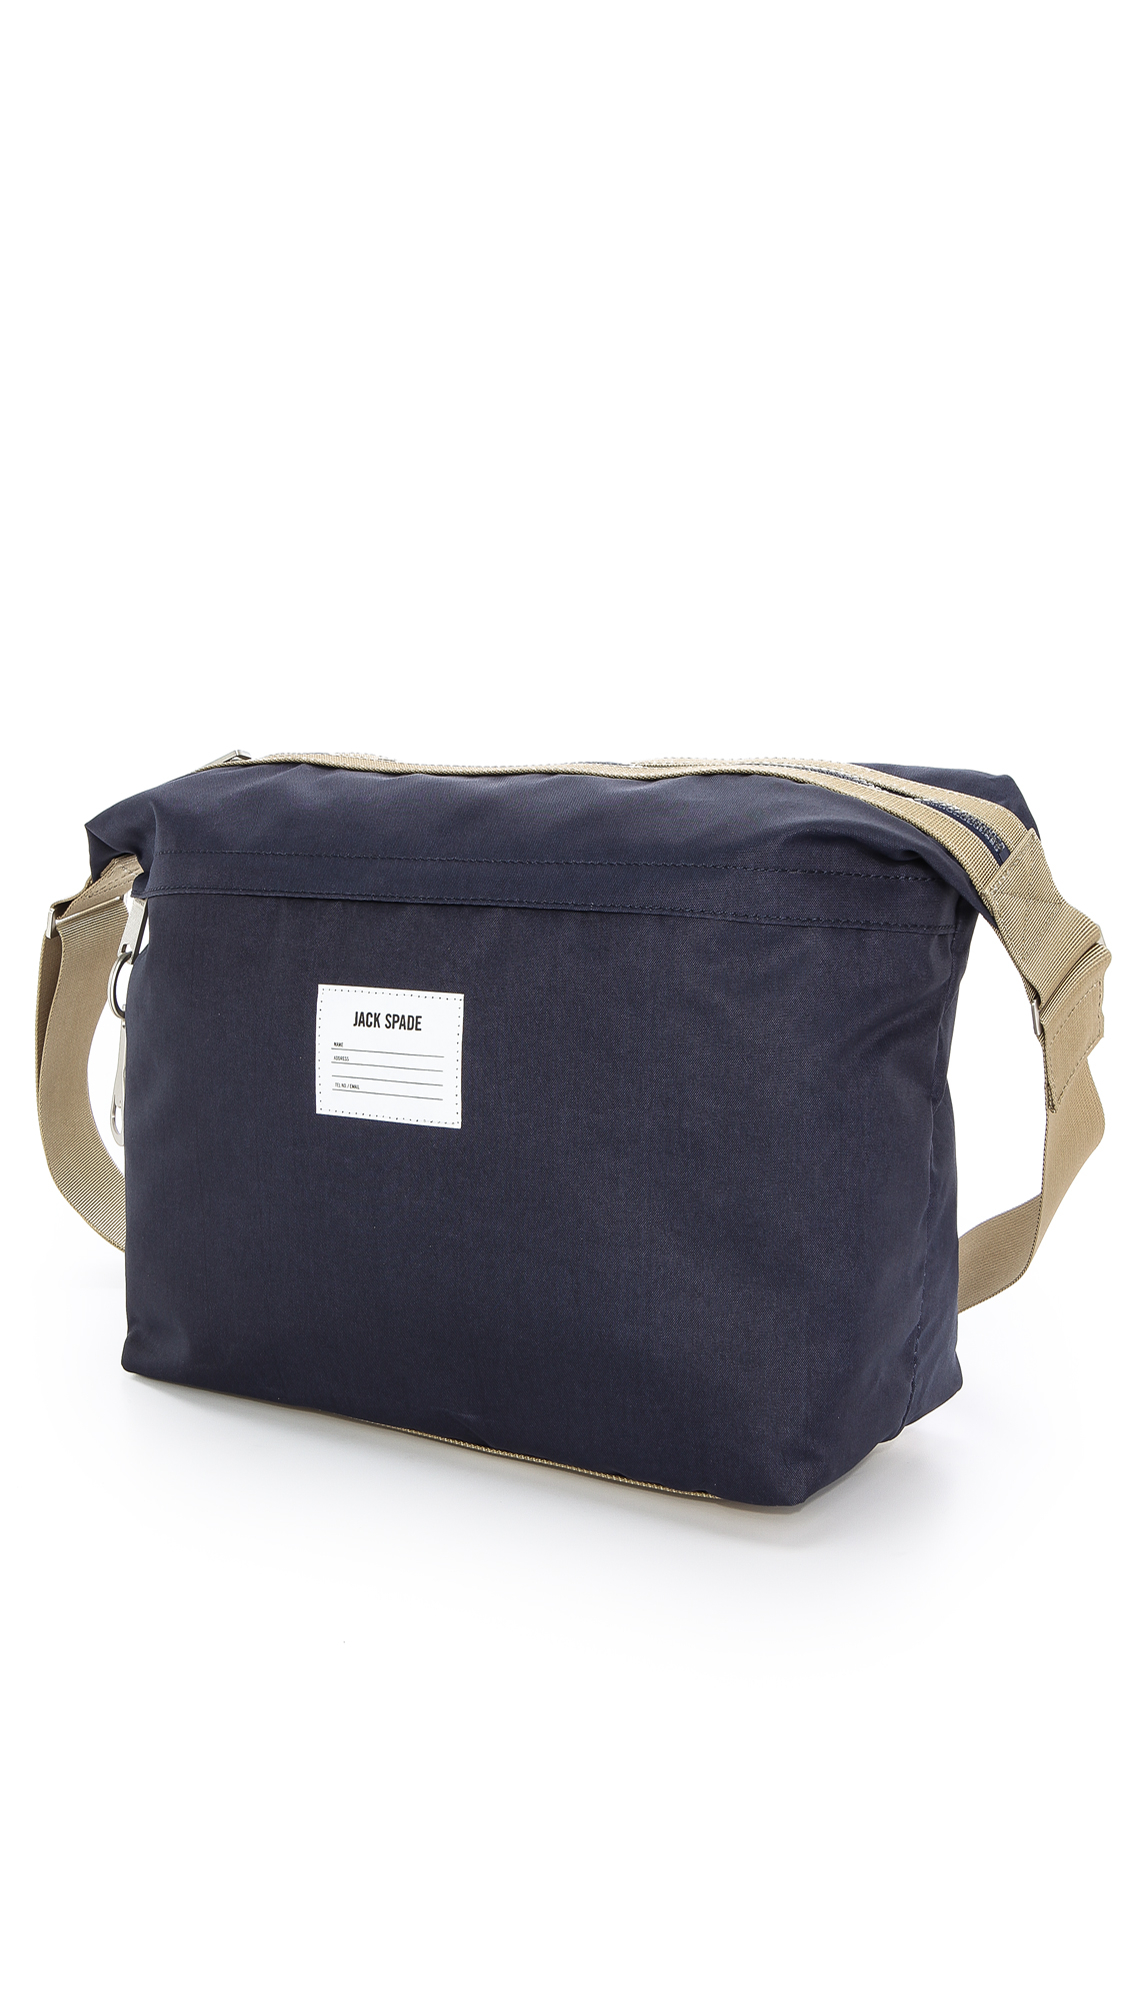 spade men Find jack spade men's fashion at shopstyle shop the latest collection of jack spade men's fashion from the most popular stores - all in one place.